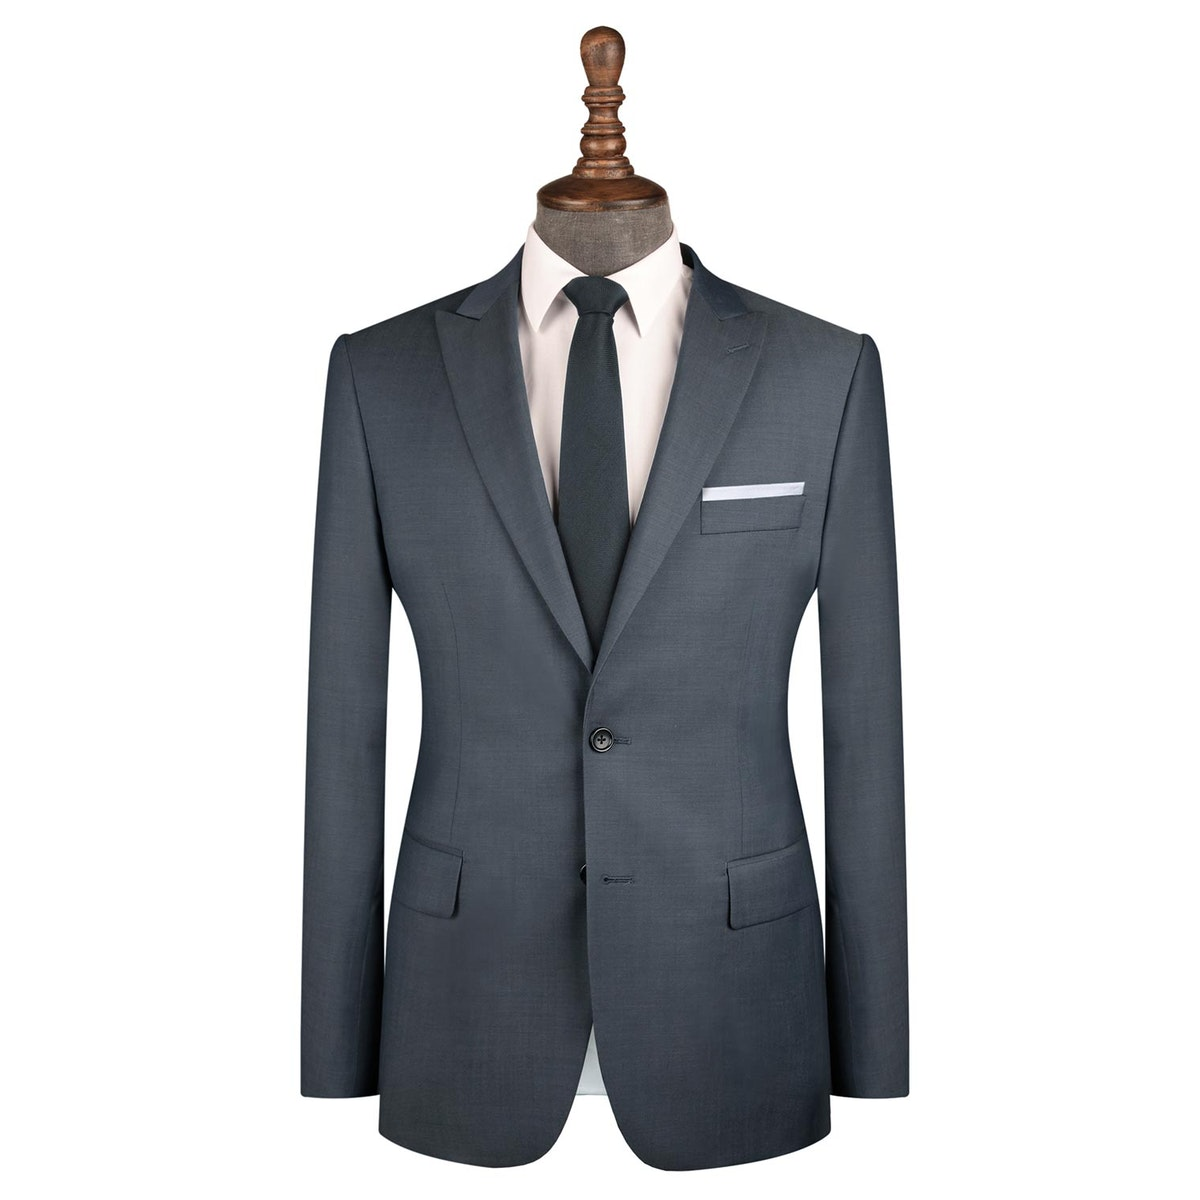 InStitchu Collection The Holyhead mens suit